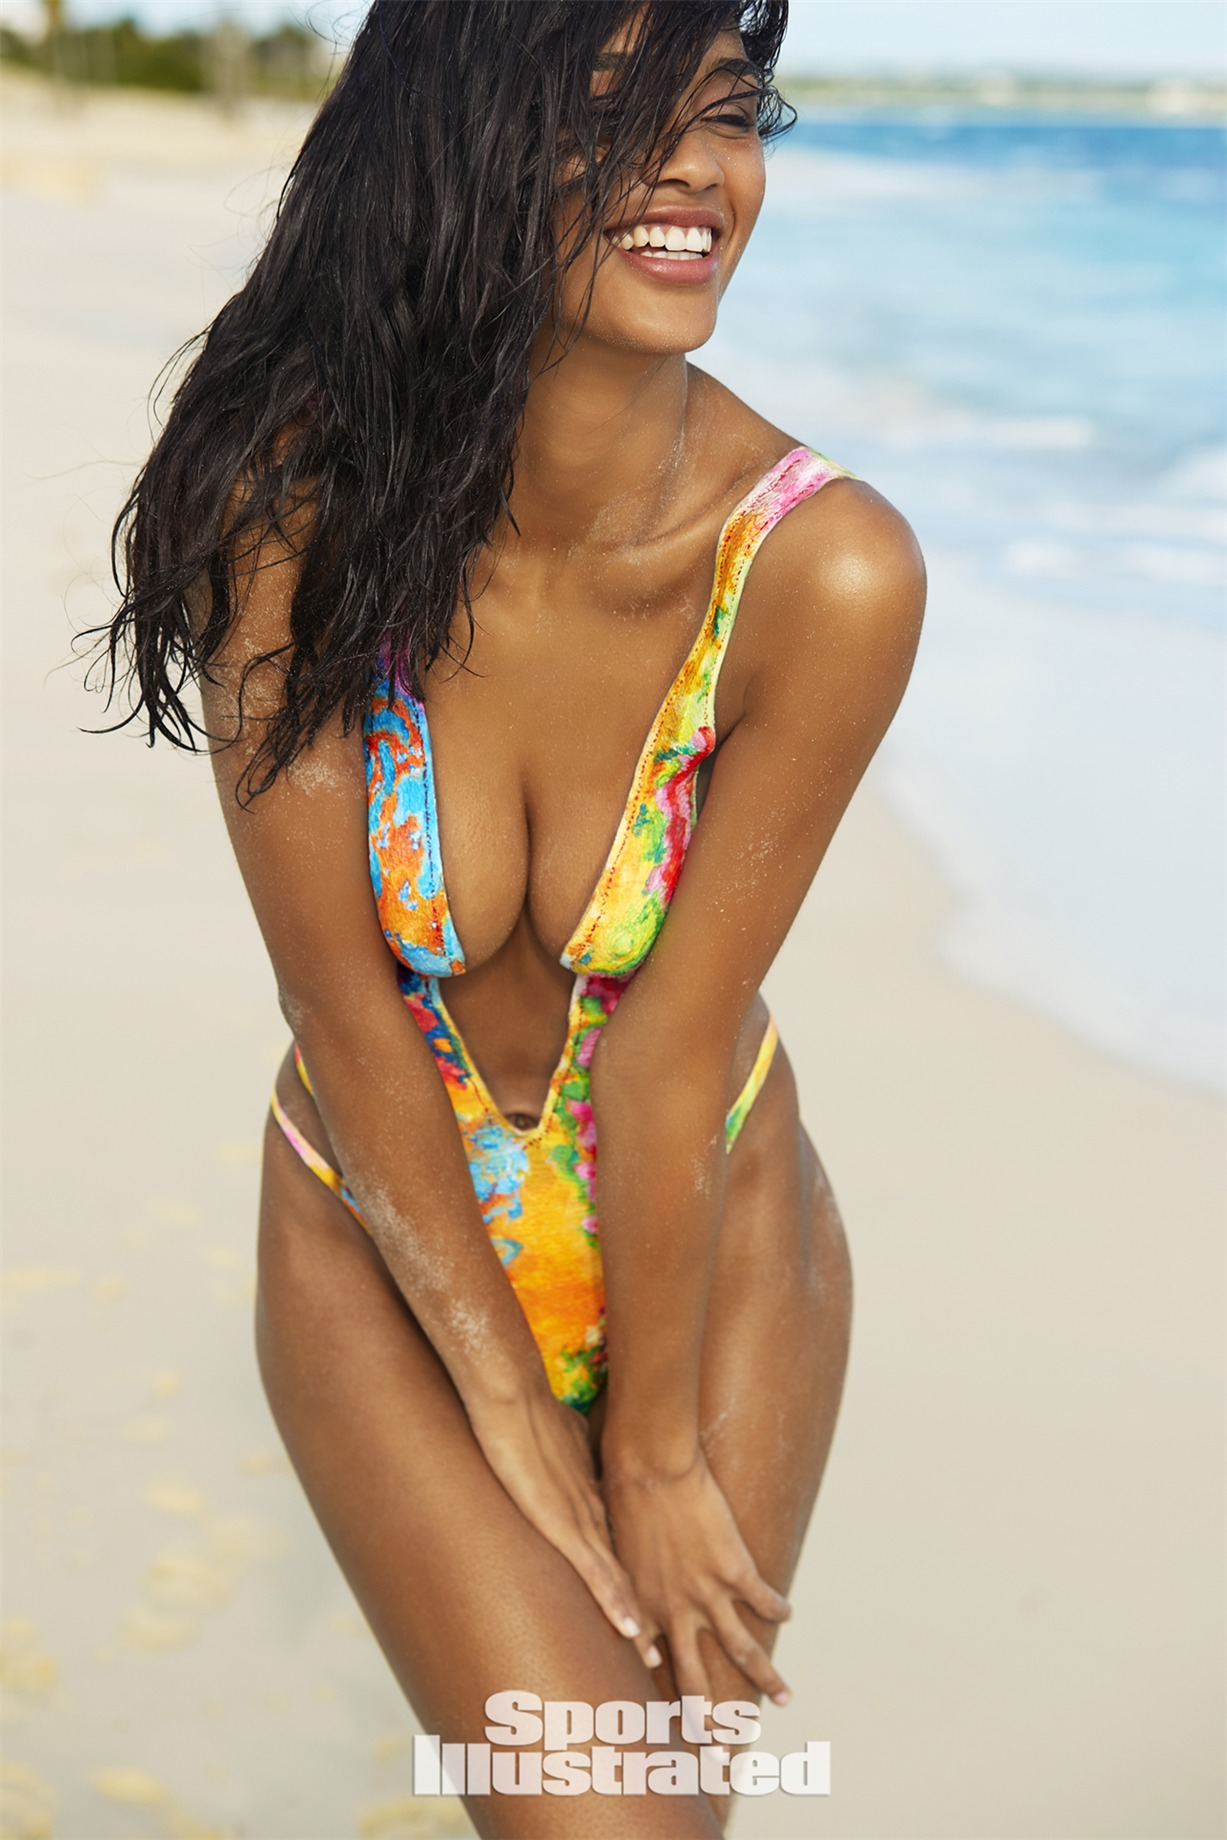 Lisa-Marie Jaftha / Лиза-Мари Джафта в боди-арт-купальнике - Sports Illustrated Swimsuit 2017 issue / in Anguilla by Josephine Clough